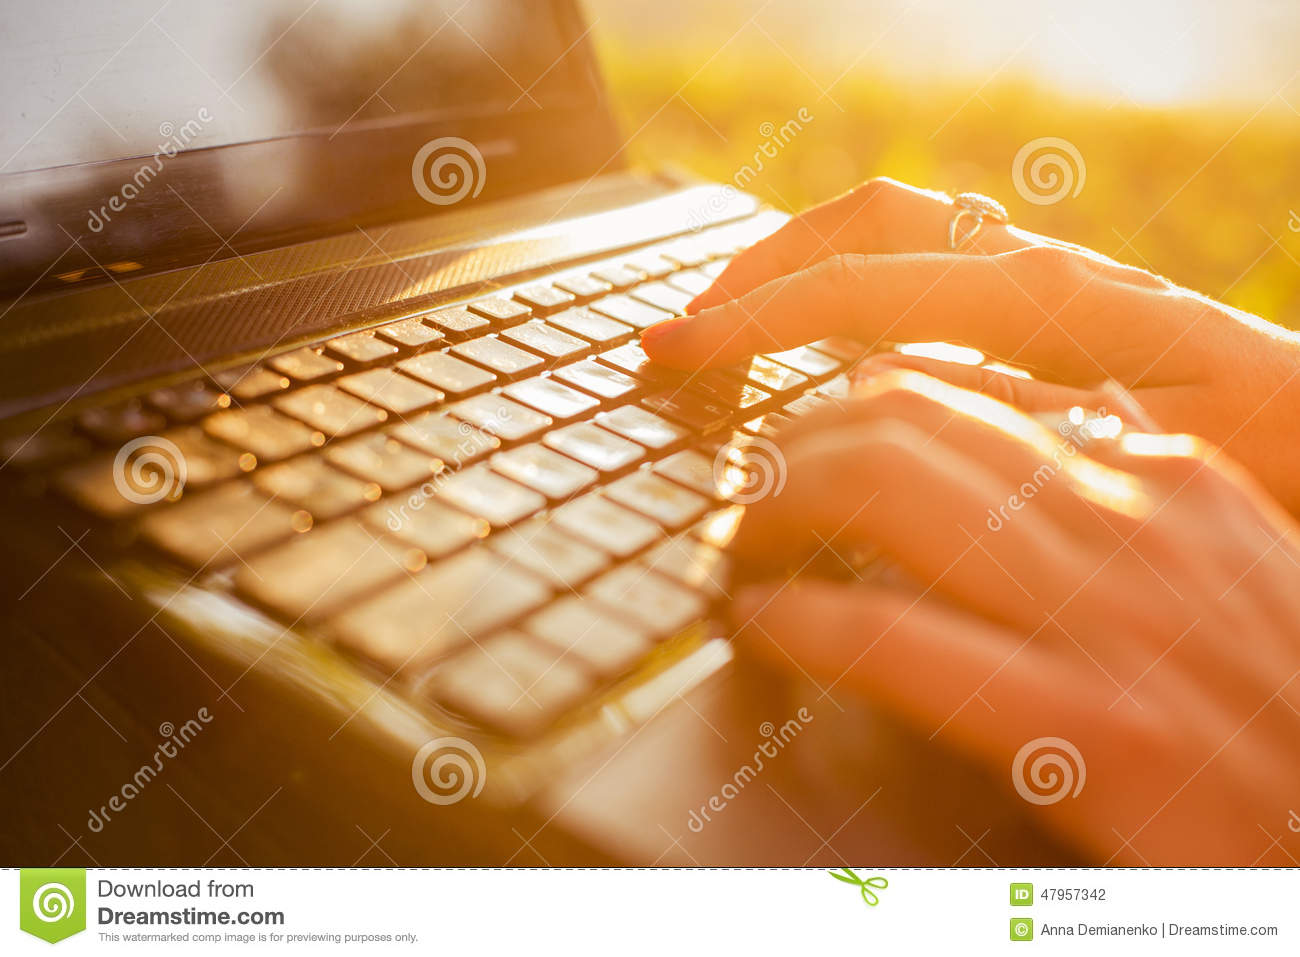 Woman typing on a laptop keyboard in a warm sunny day outdoors.